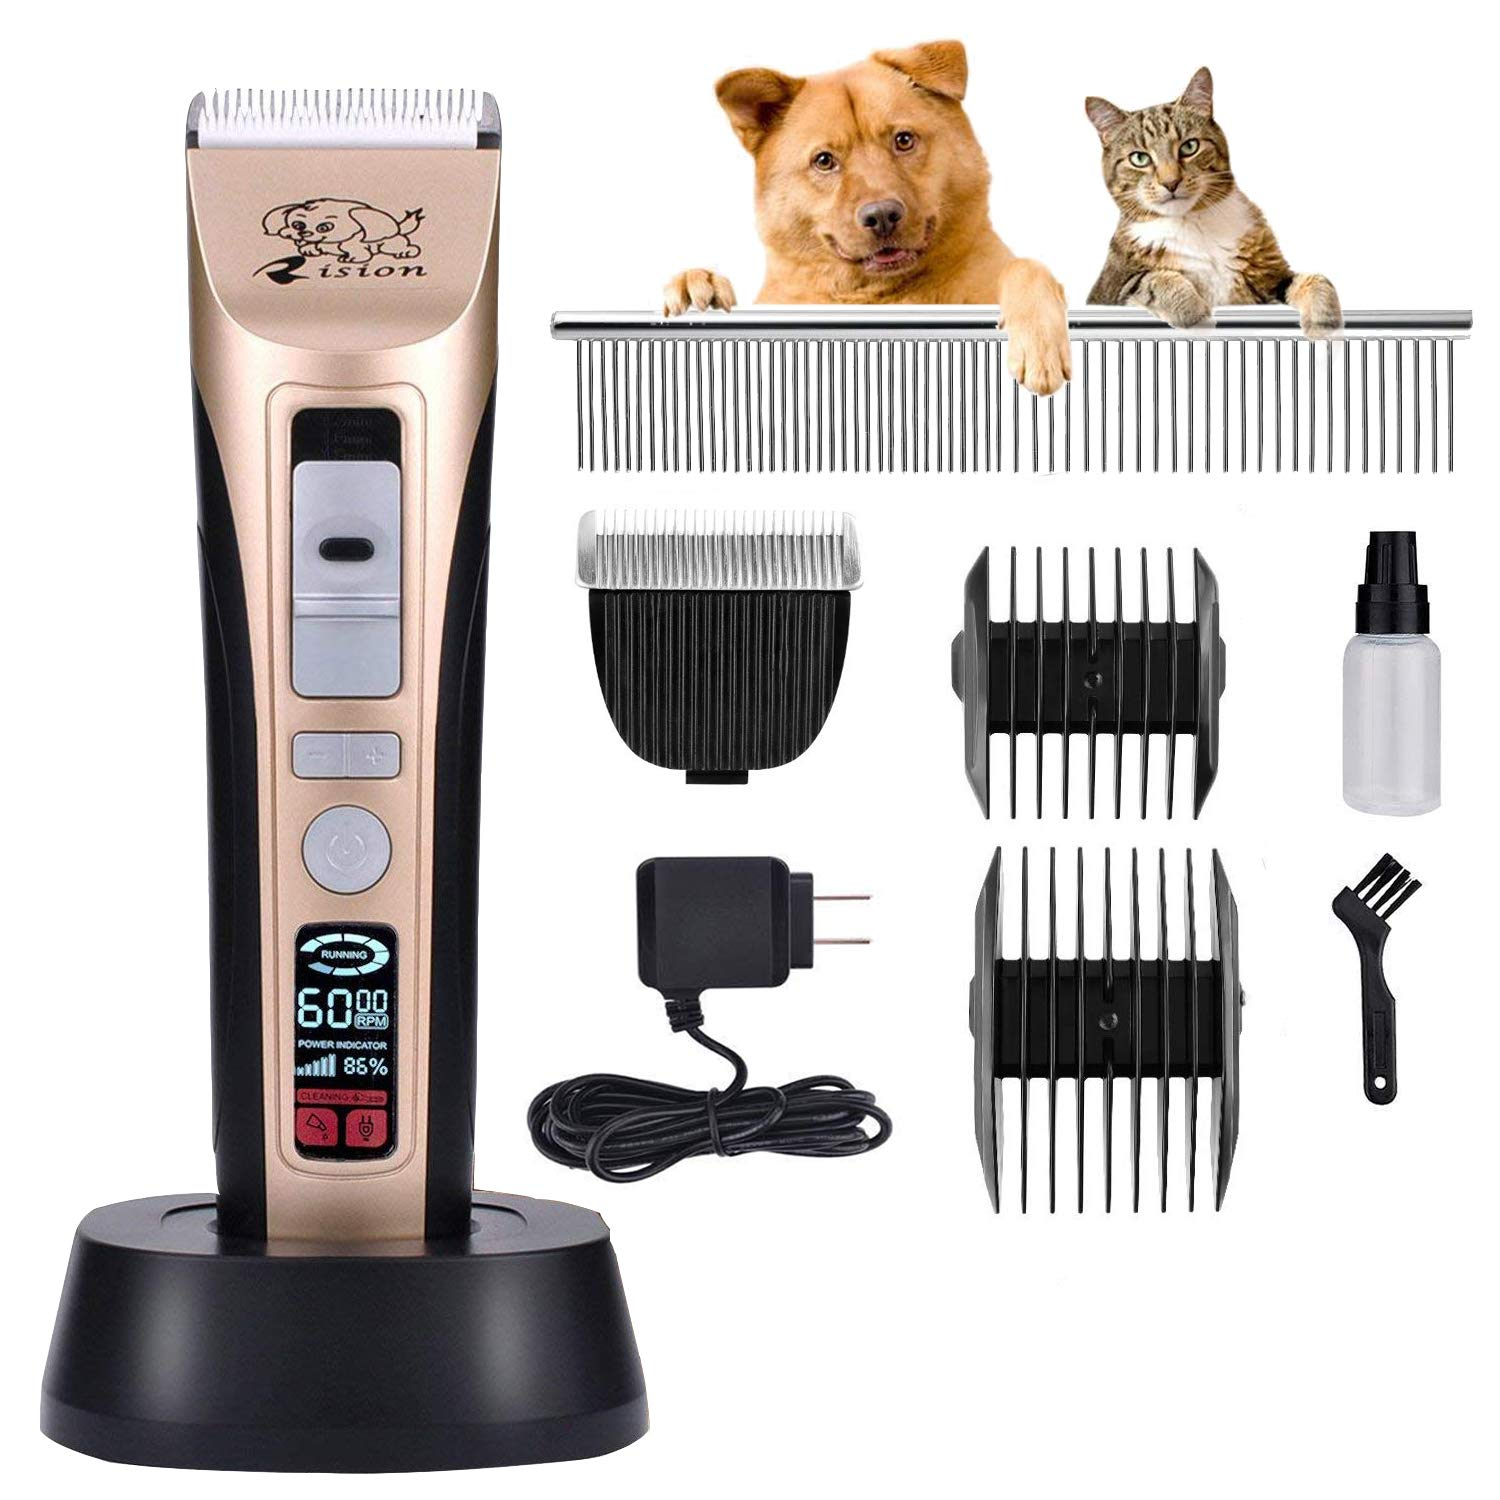 Rision Professional Pet Grooming Clipper Kit Low Noise Rechargeable Cordless Dog Hair Trimming Clippers Set with 5 Adjustable Working Speed for Dogs Cats and Other Animals Gold